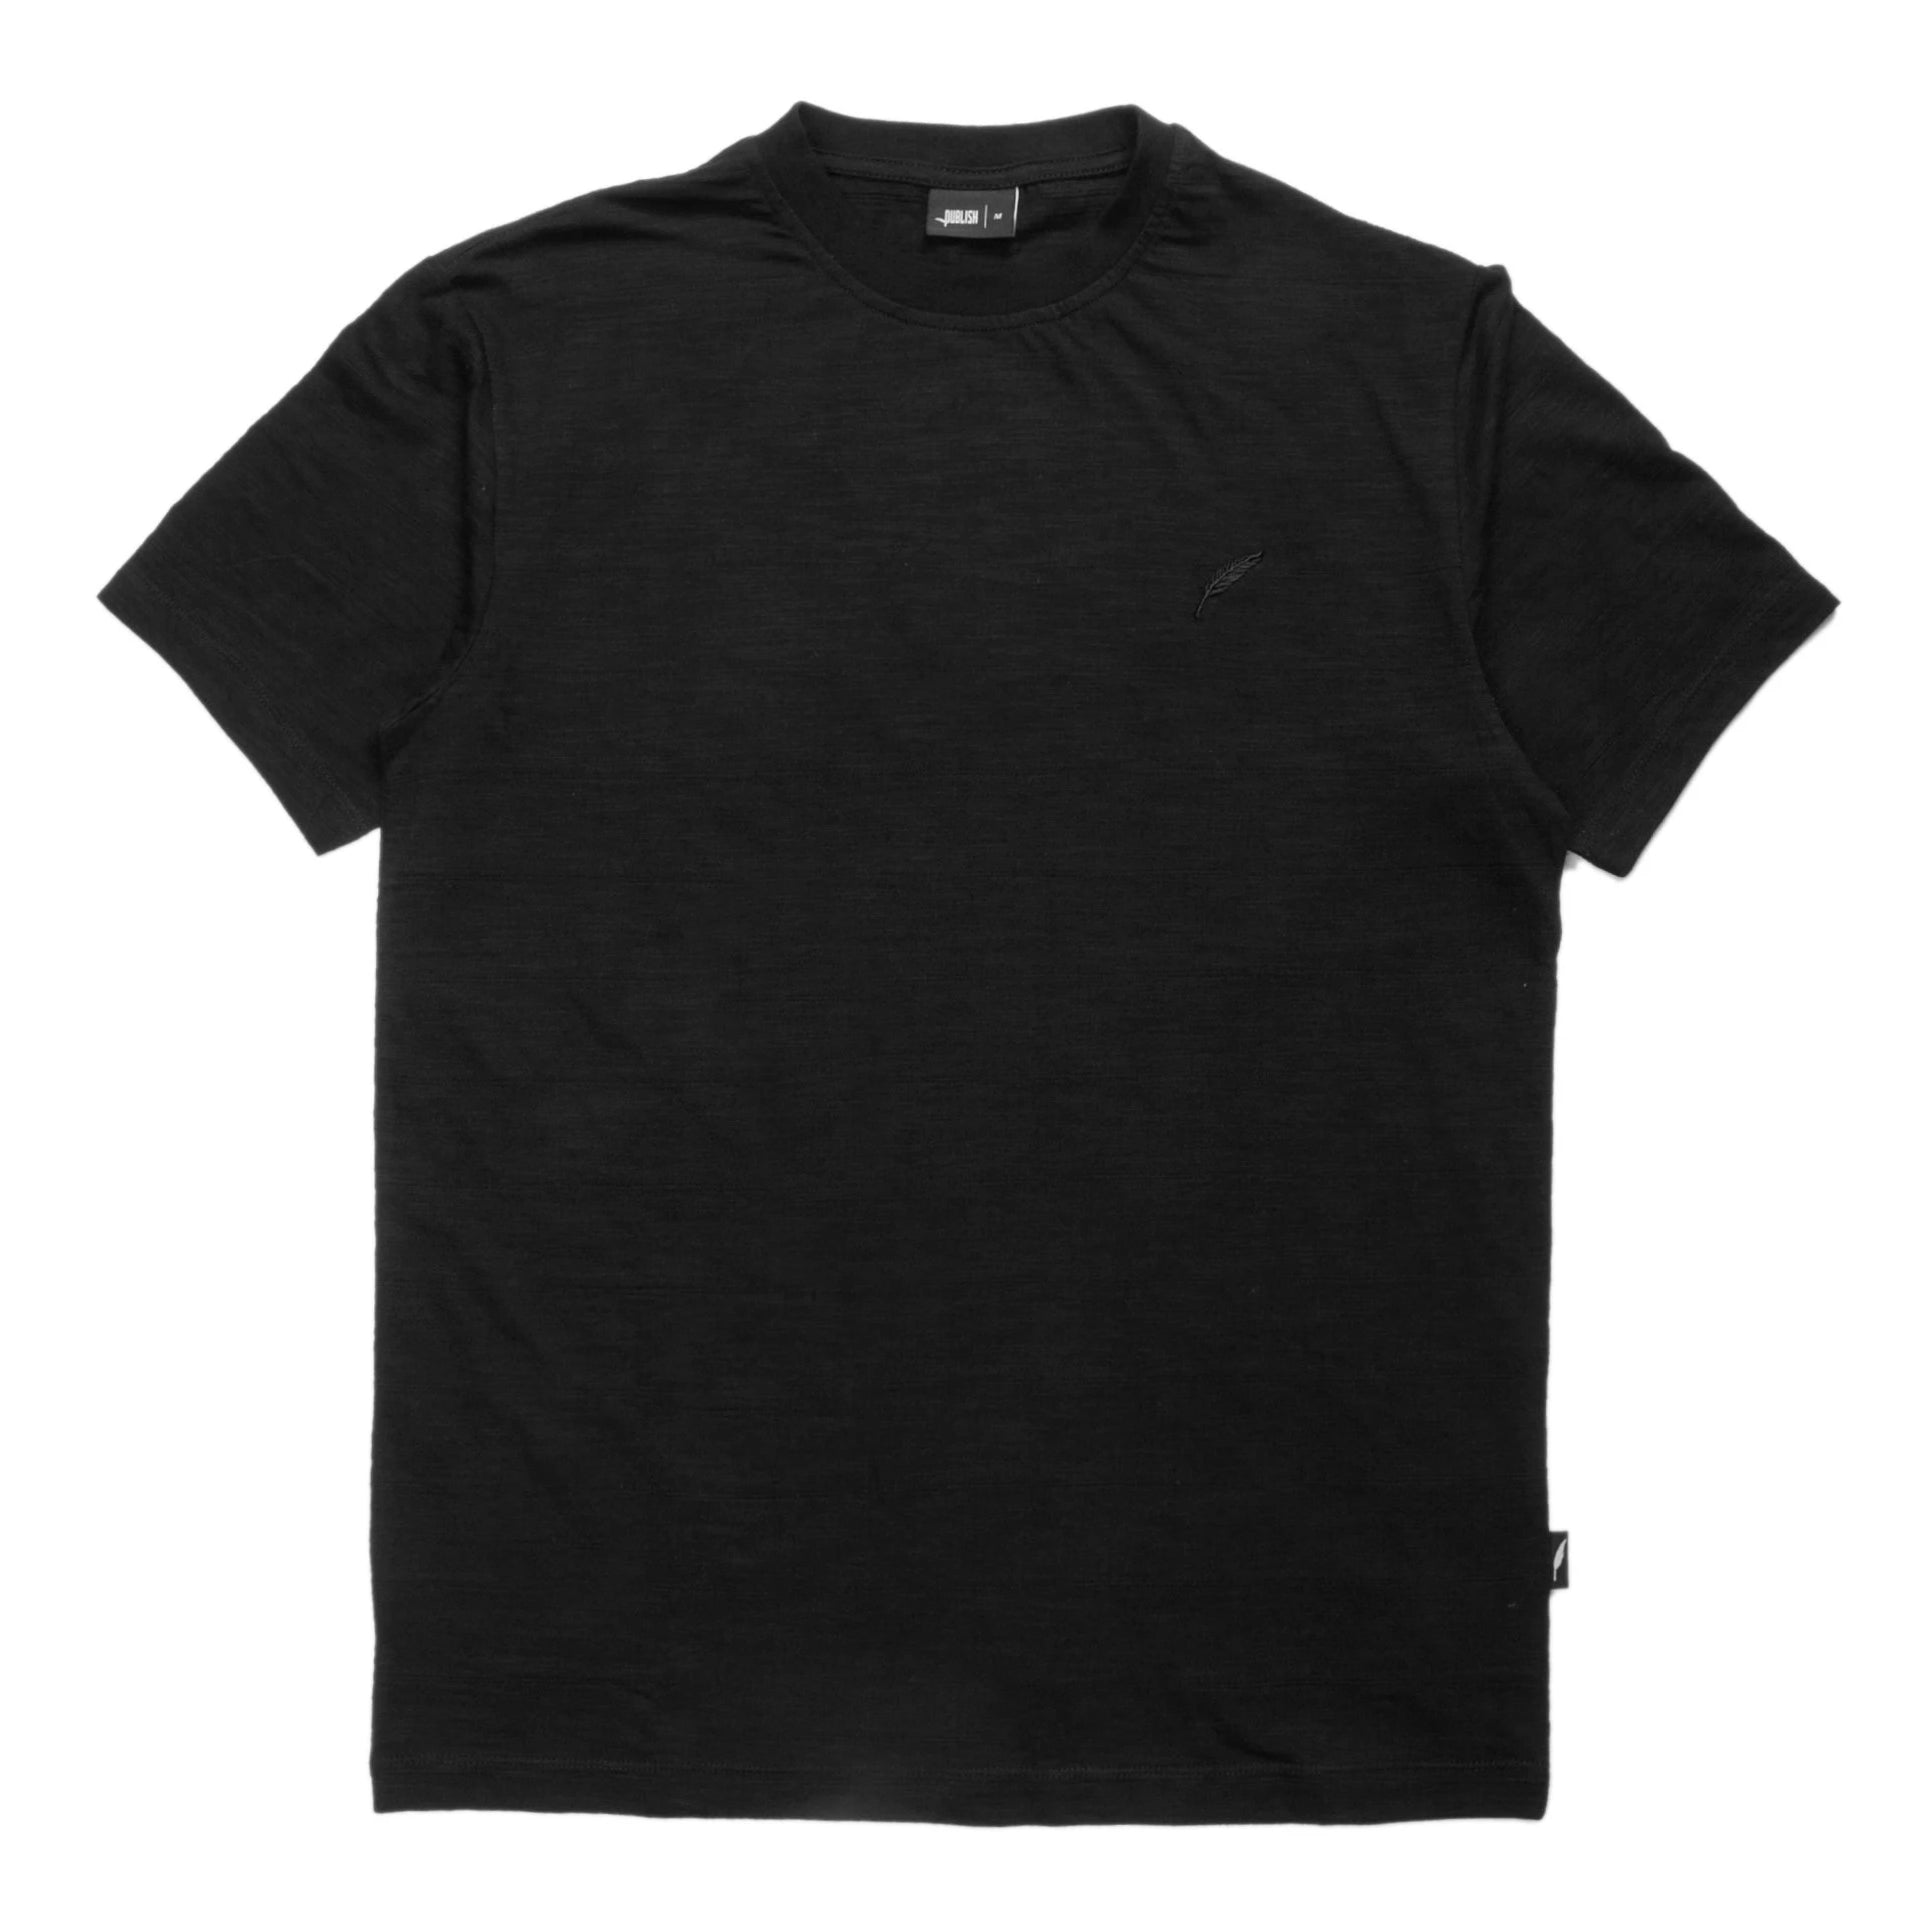 Tryee T-Shirt (Black)